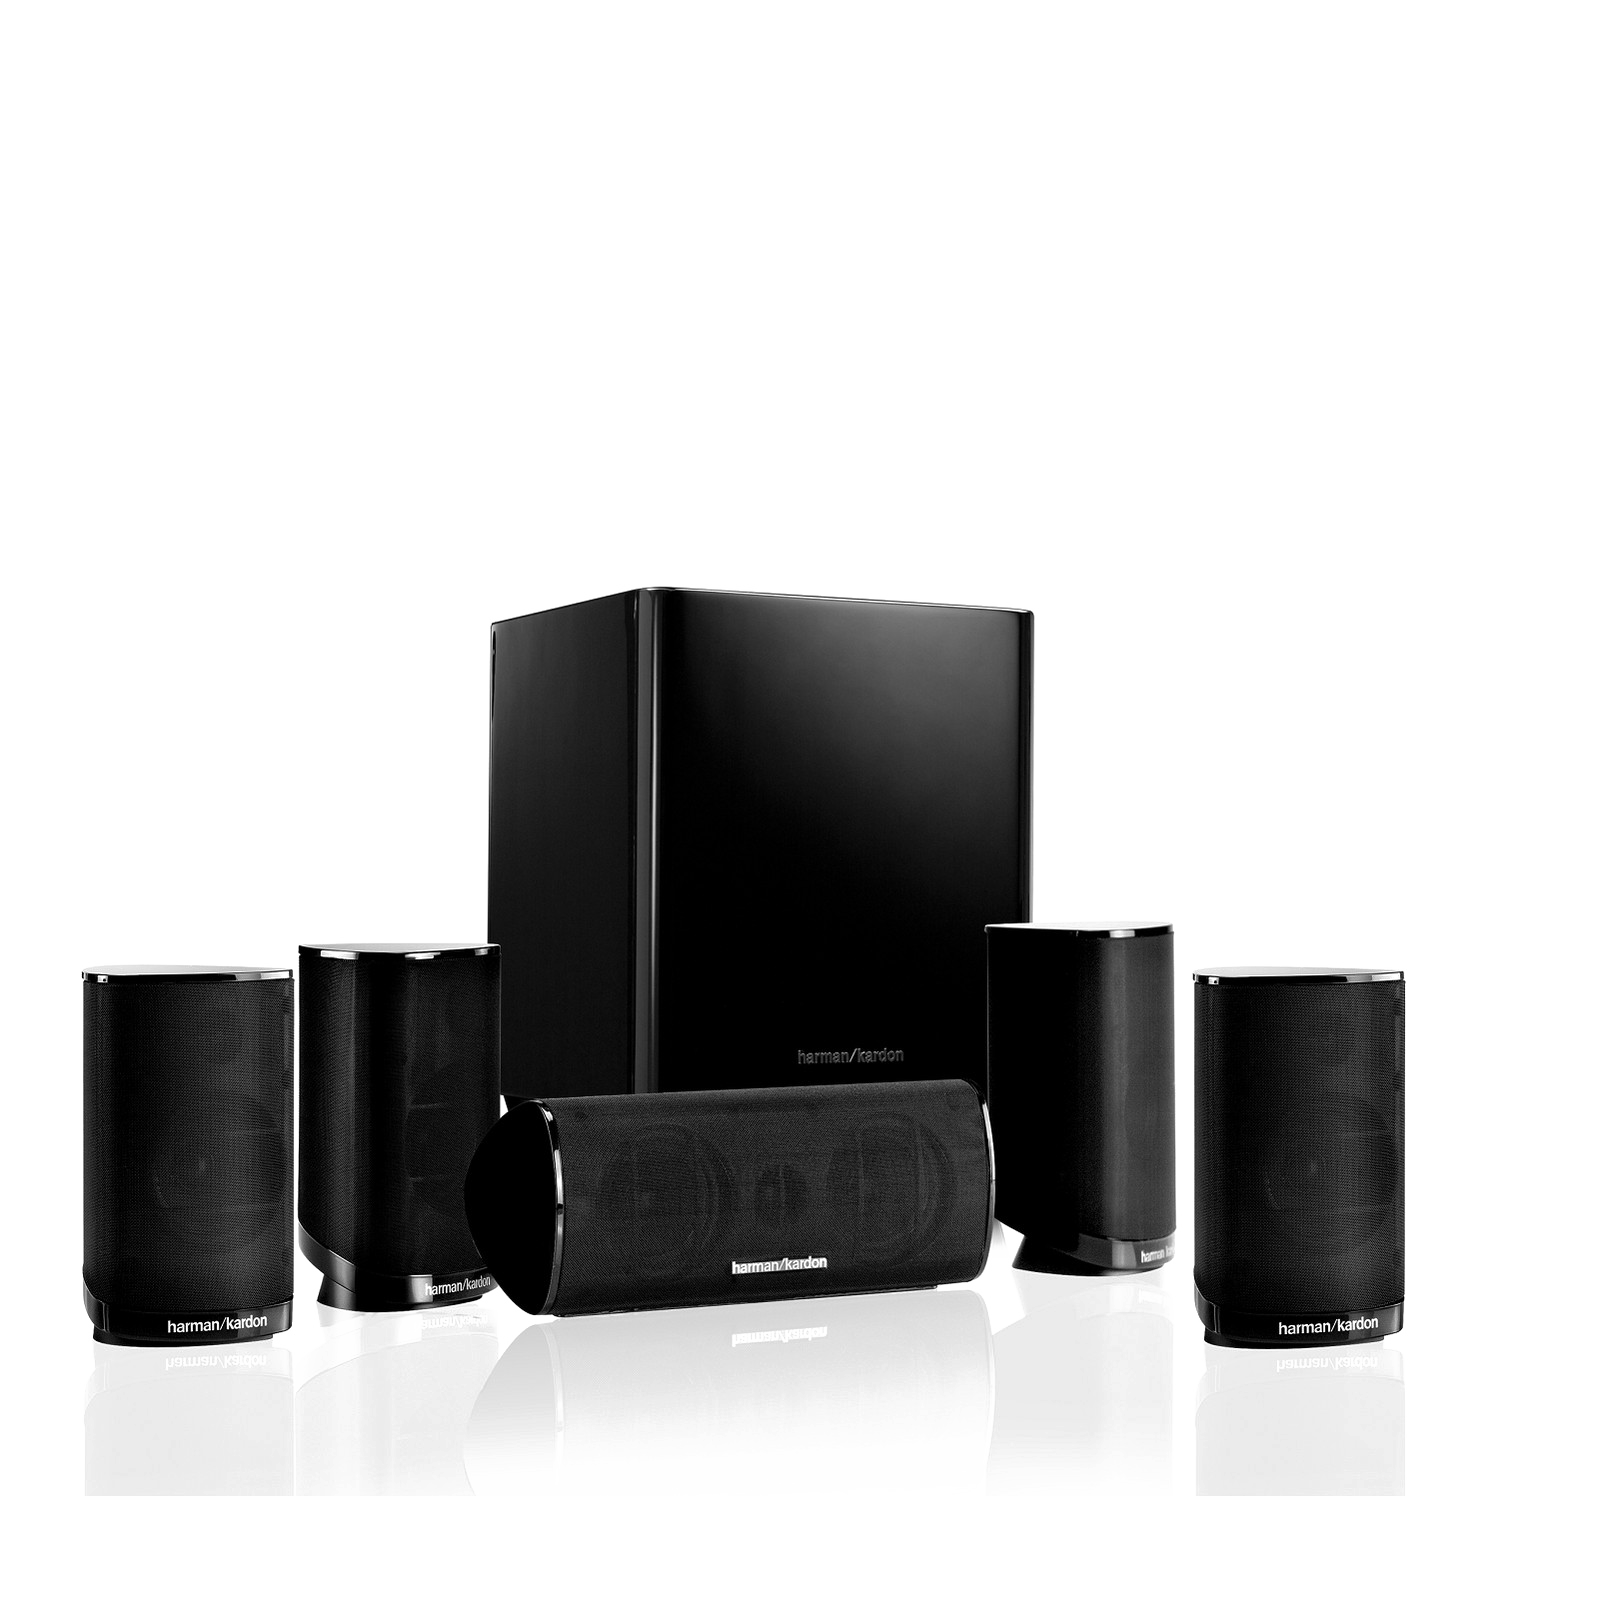 Download Home Theater System Free Download Png Hd Hq Png Image Freepngimg